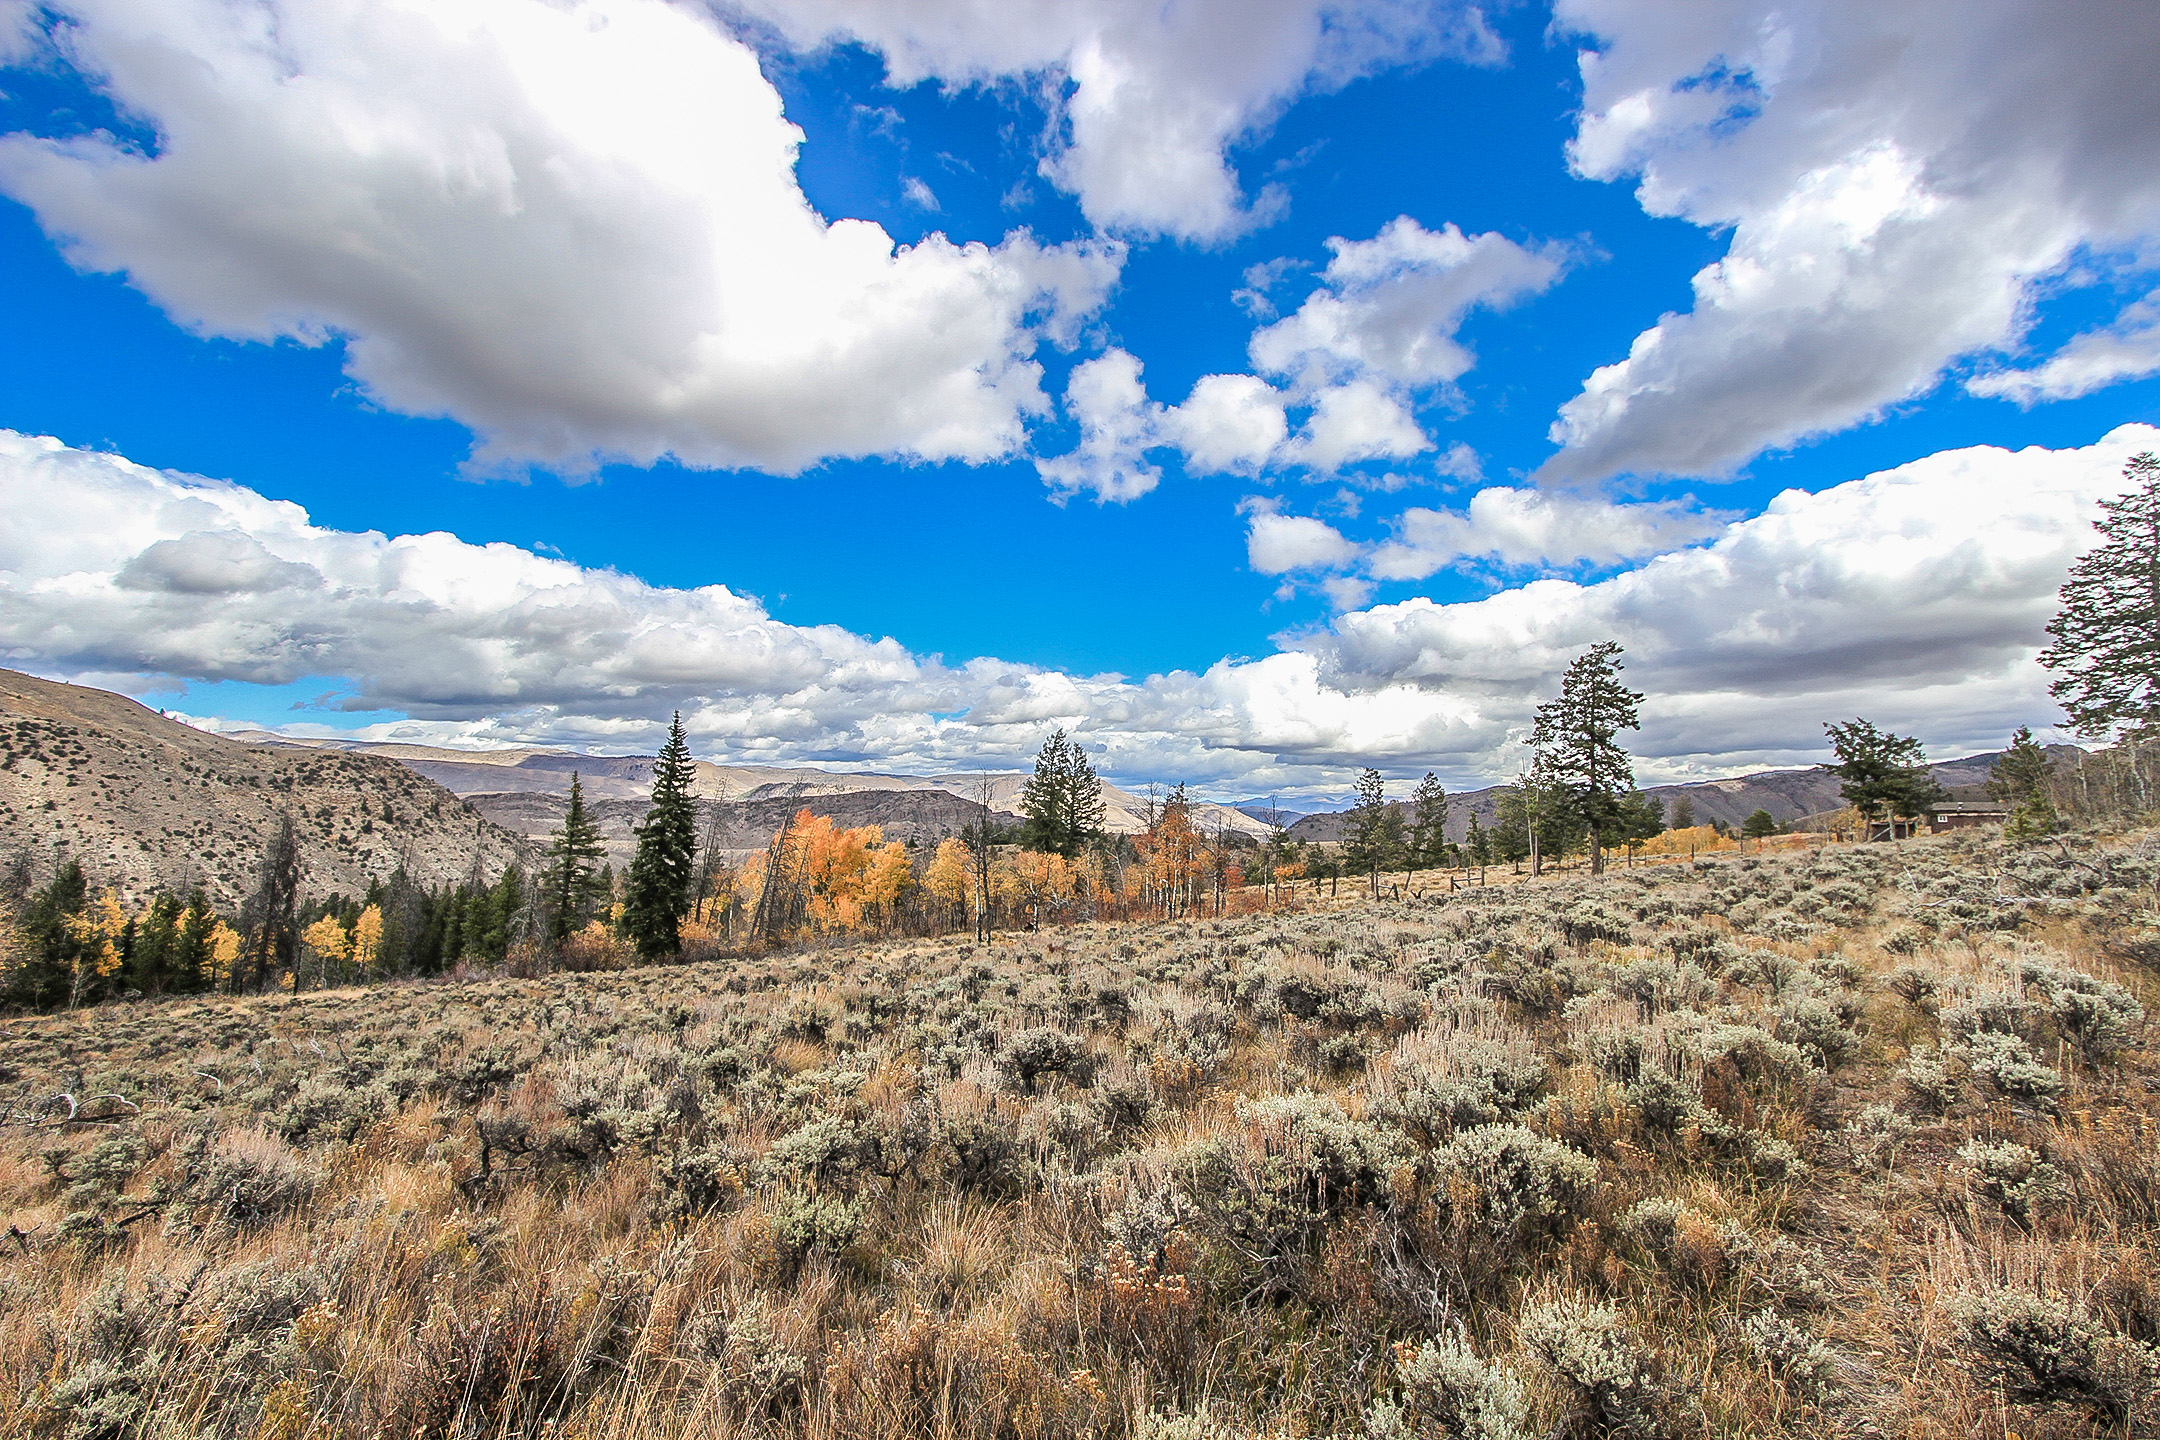 TBD County Road 559 - HOT SULPHUR SPRINGS - 123 acres of pristine Colorado high country. Lots of trees, amazing wildlife habitat, and gorgeous views from all directions. Property borders National Forest for endless recreational possibilities. Listed for $499,000